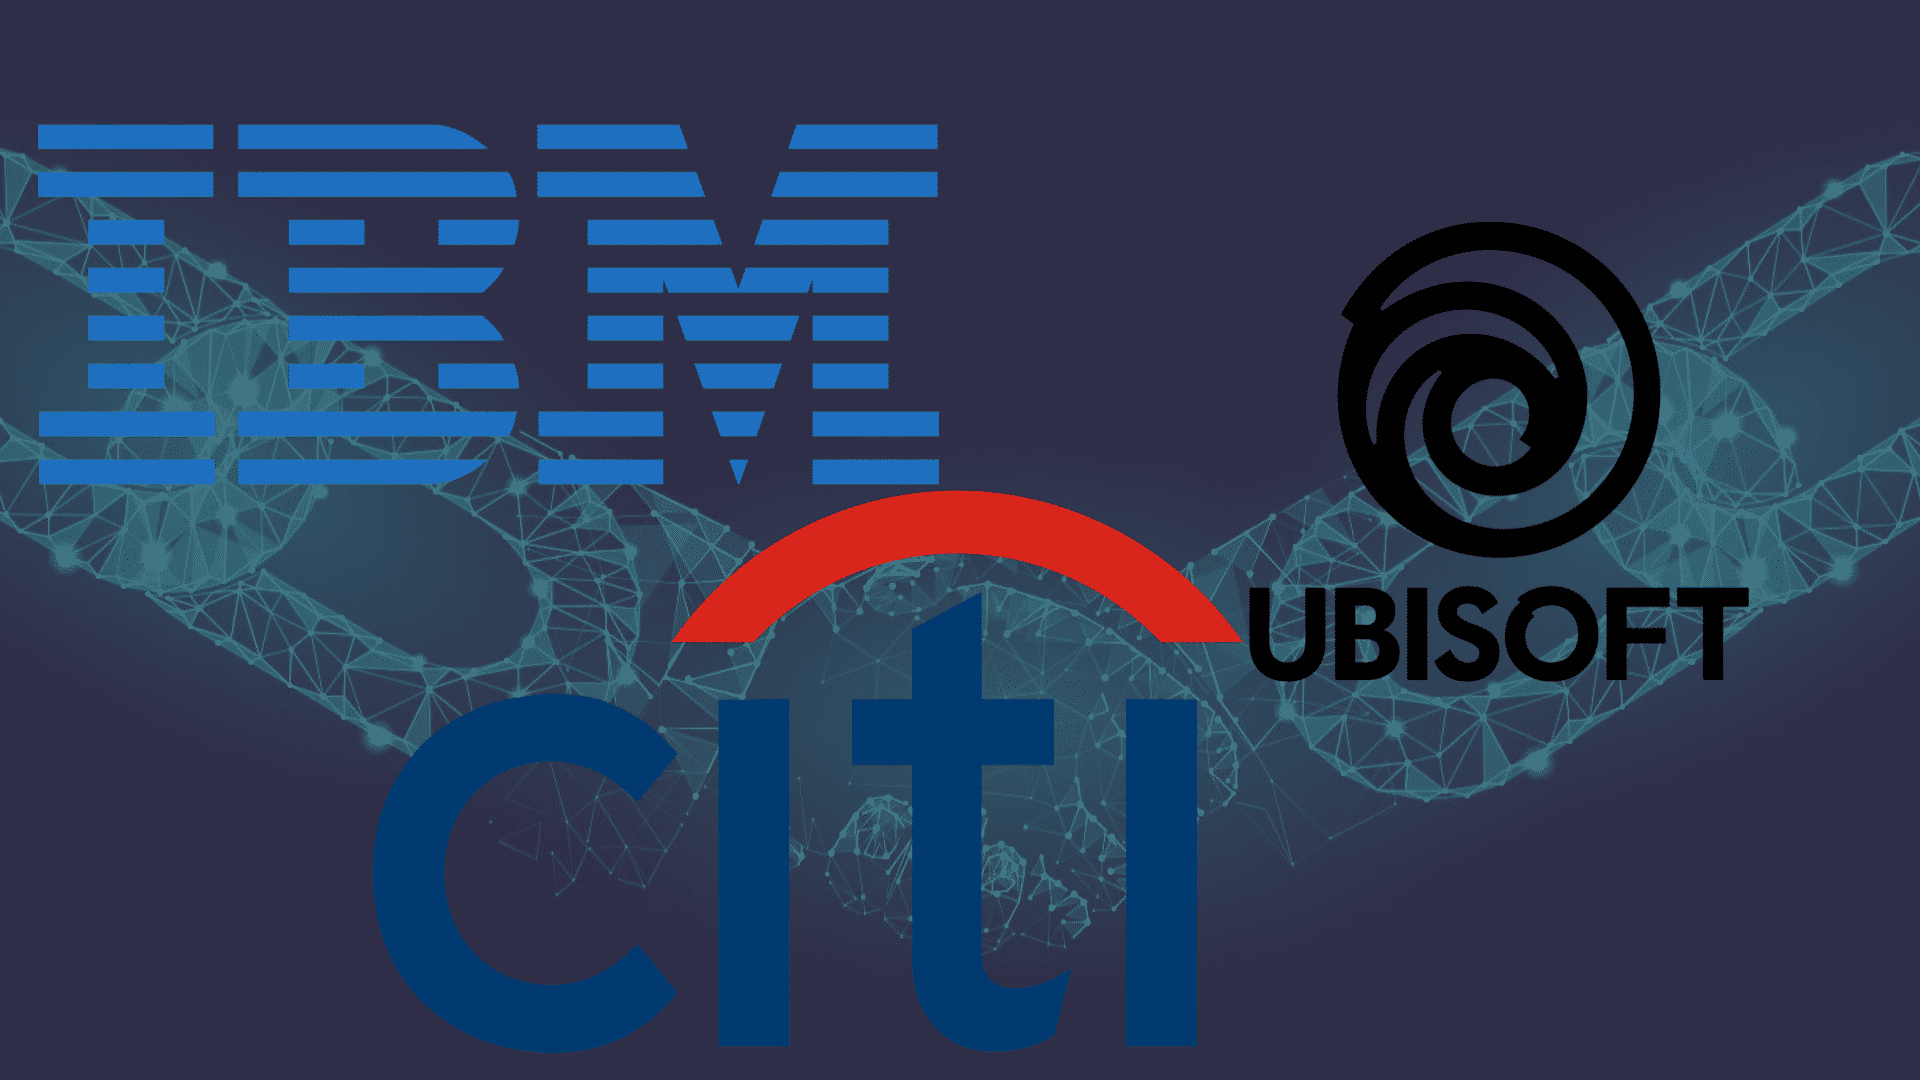 IBM, Citibank, Ubisoft Lend Support to Singapore-Based Tribe Accelerator